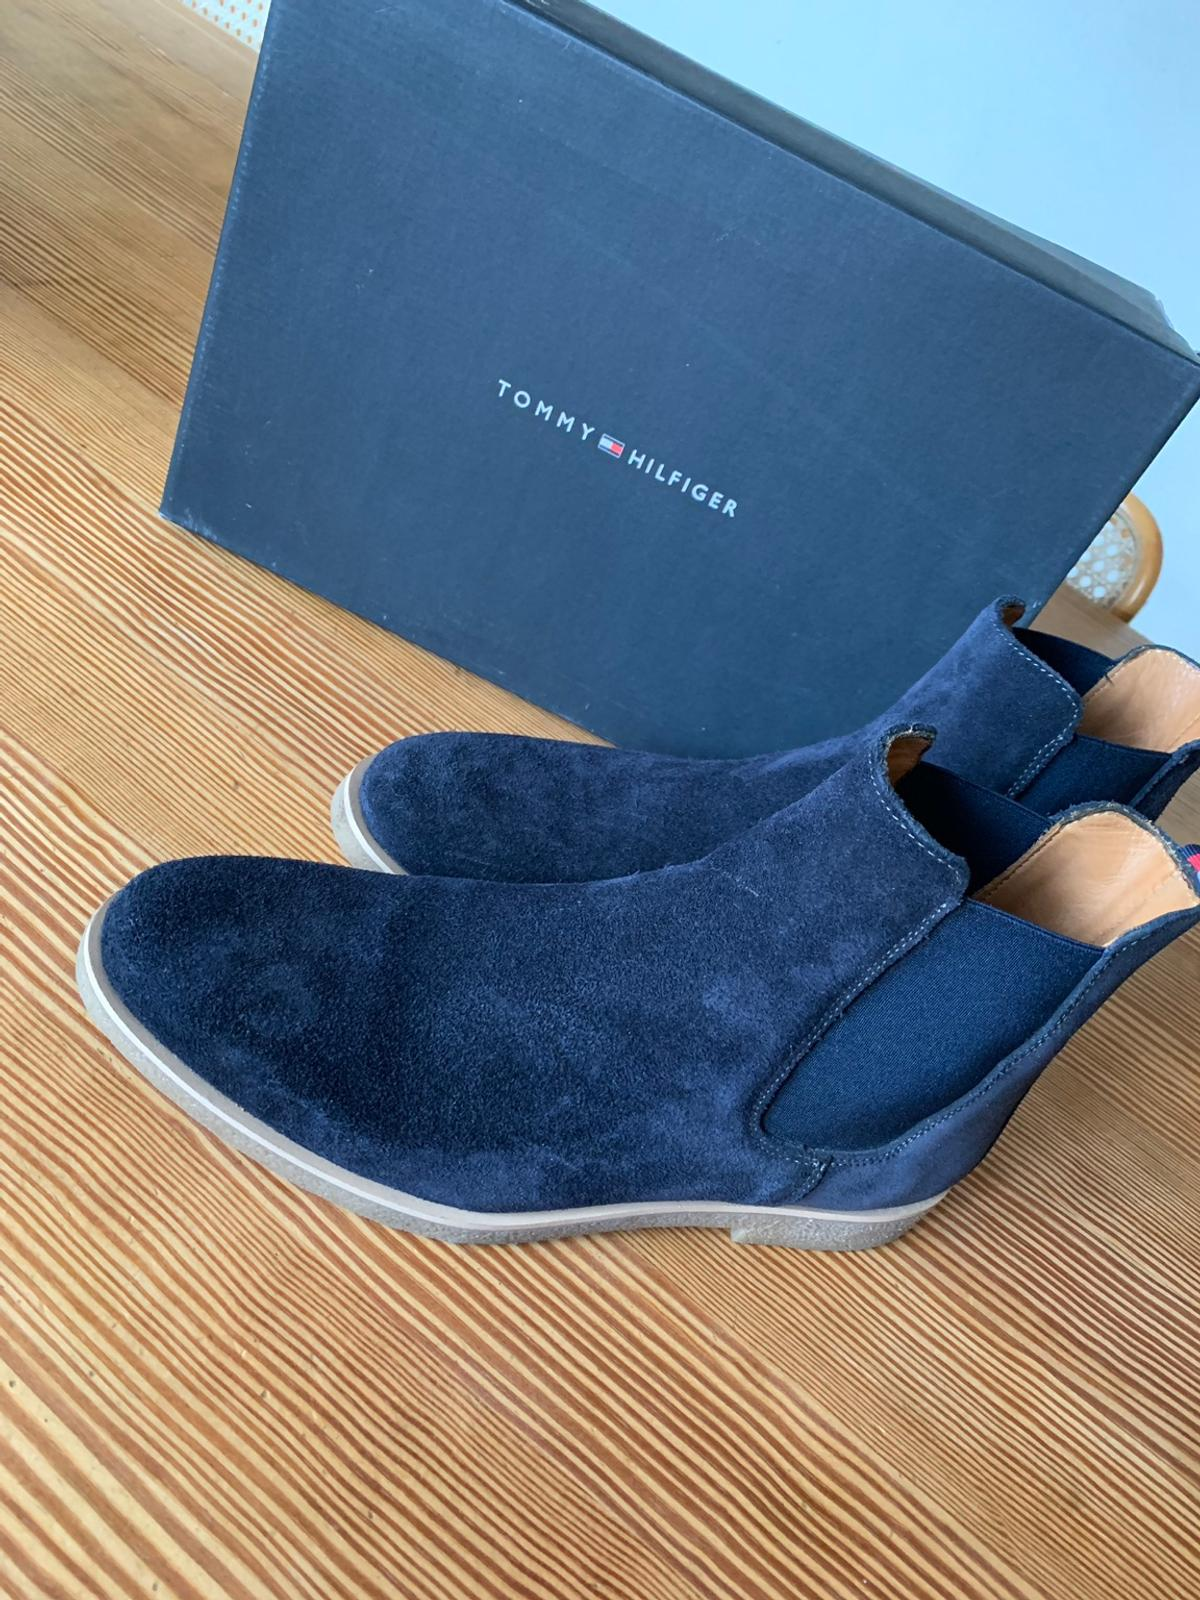 the best attitude 6eb1a 648bc Tommy Hilfiger Schuhe - Chelsea Boots Gr42/43 in 5020 ...